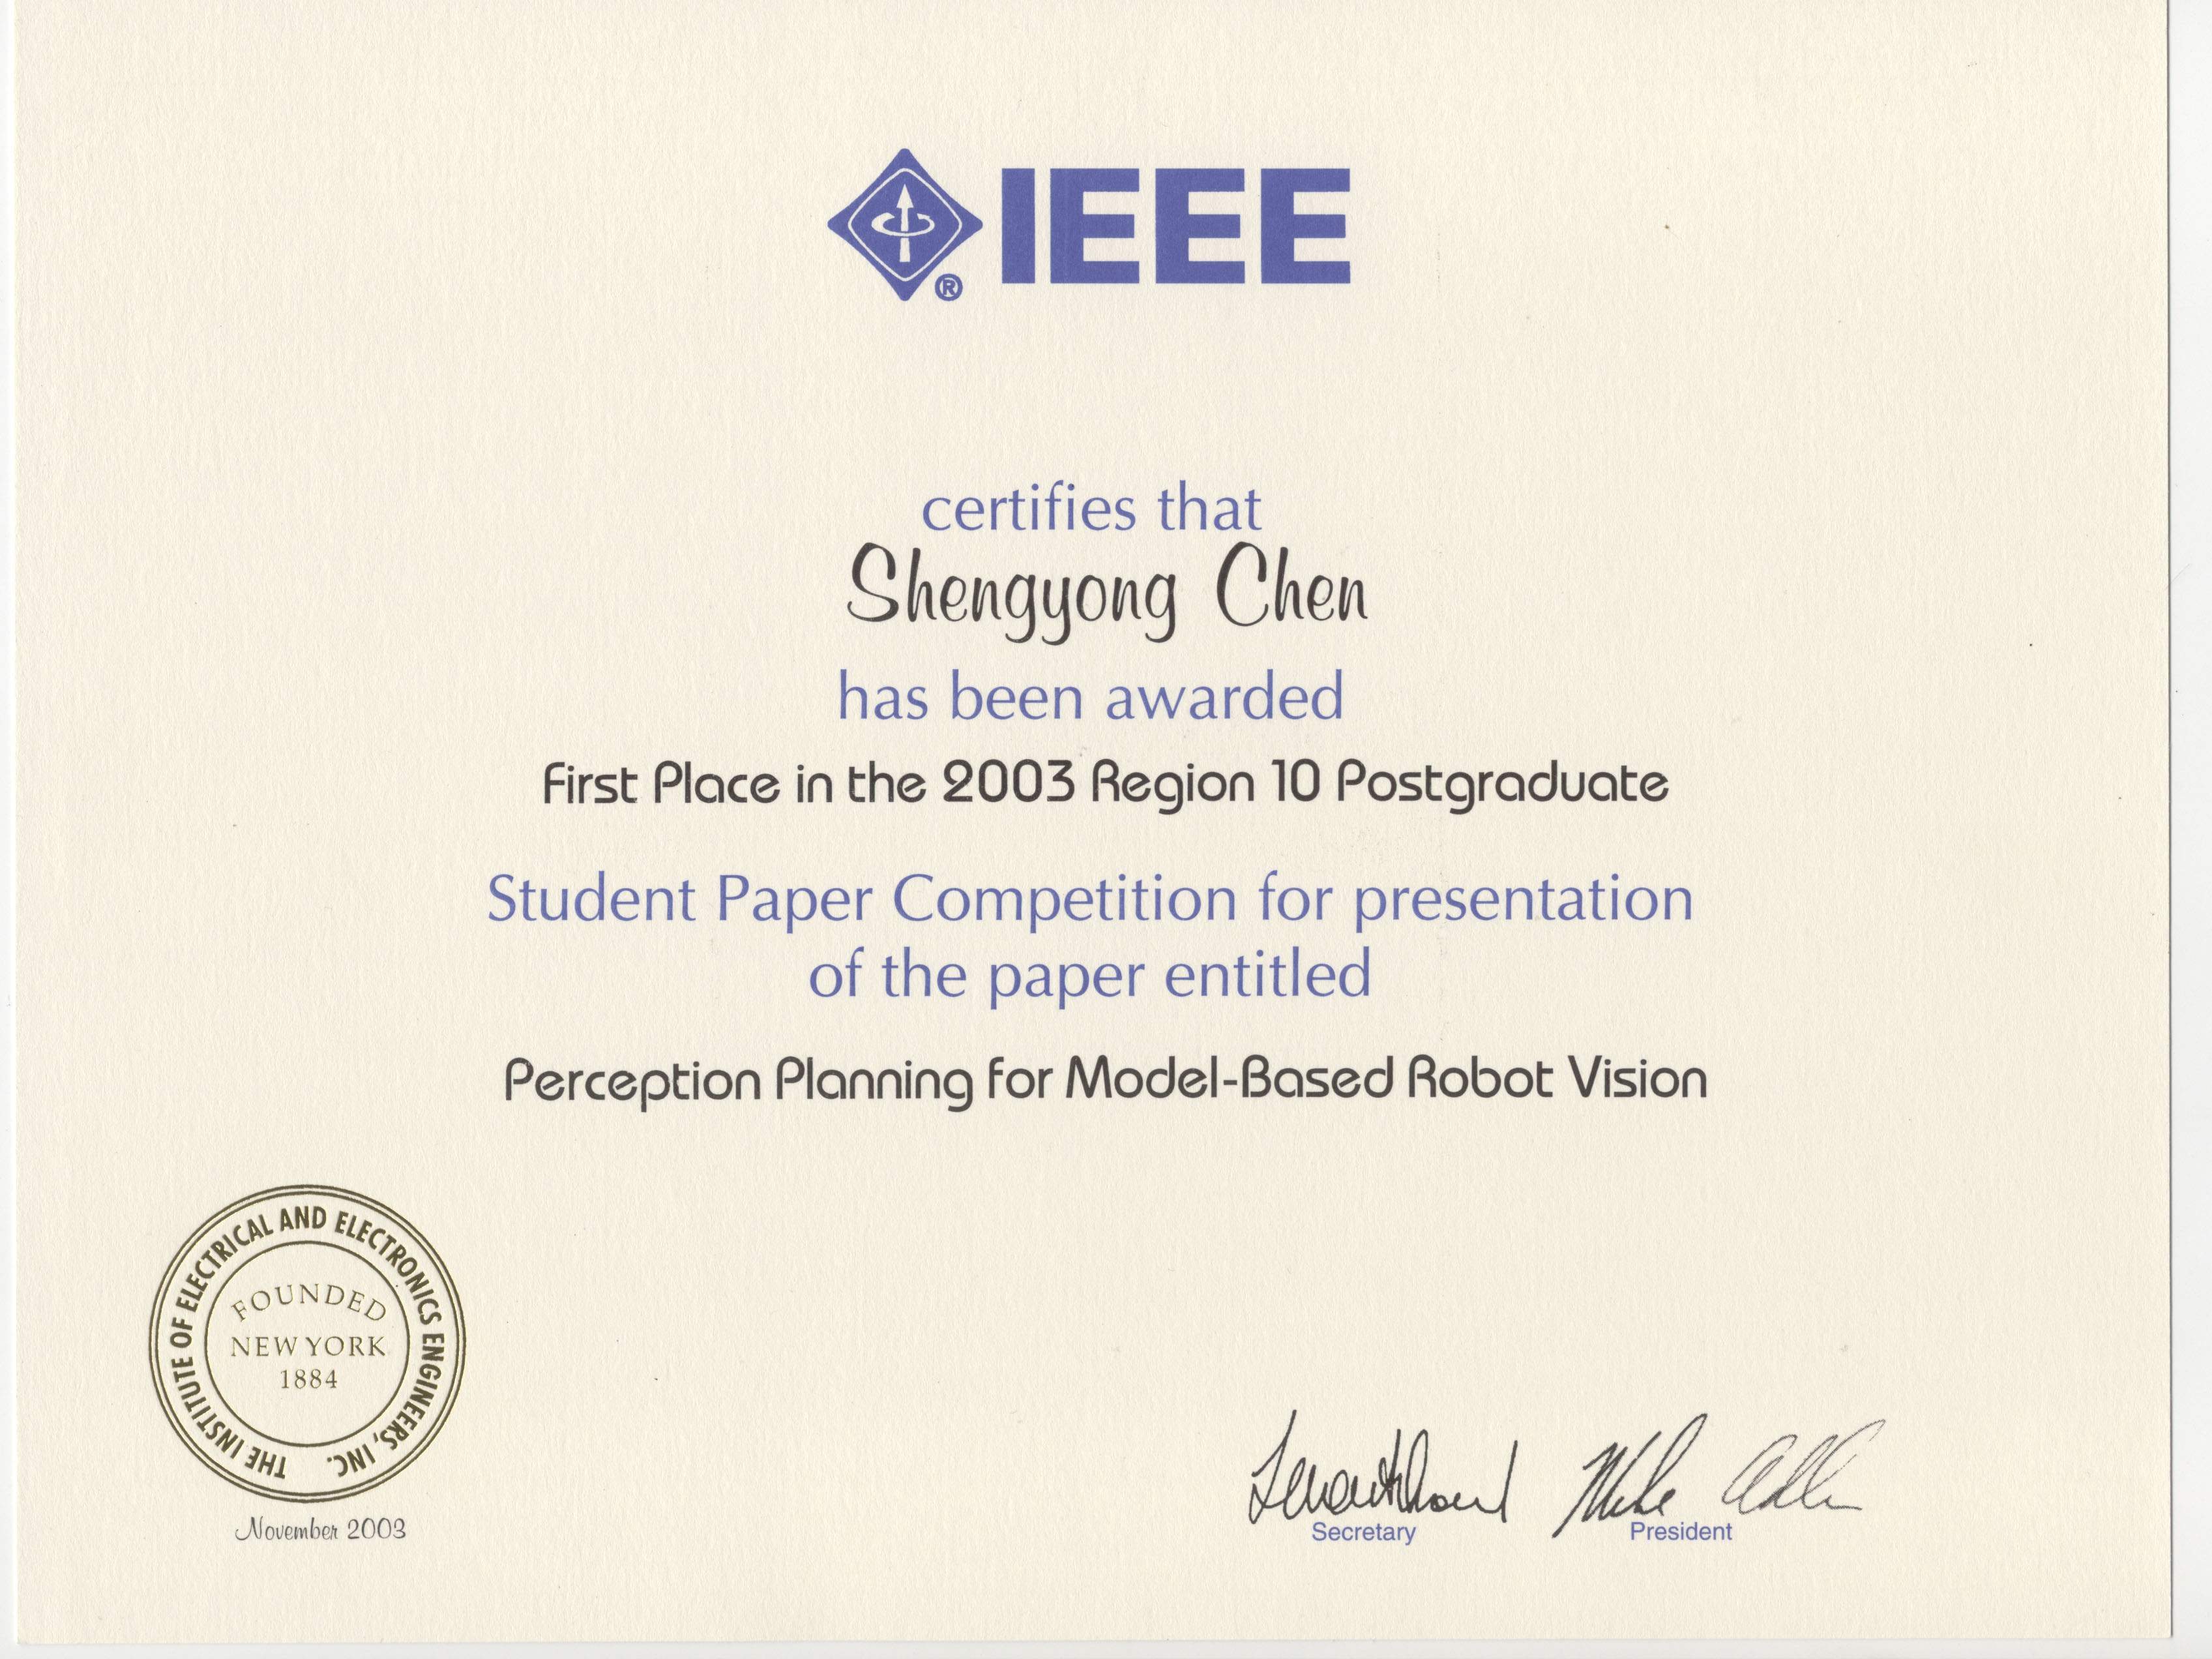 Research paper ieee